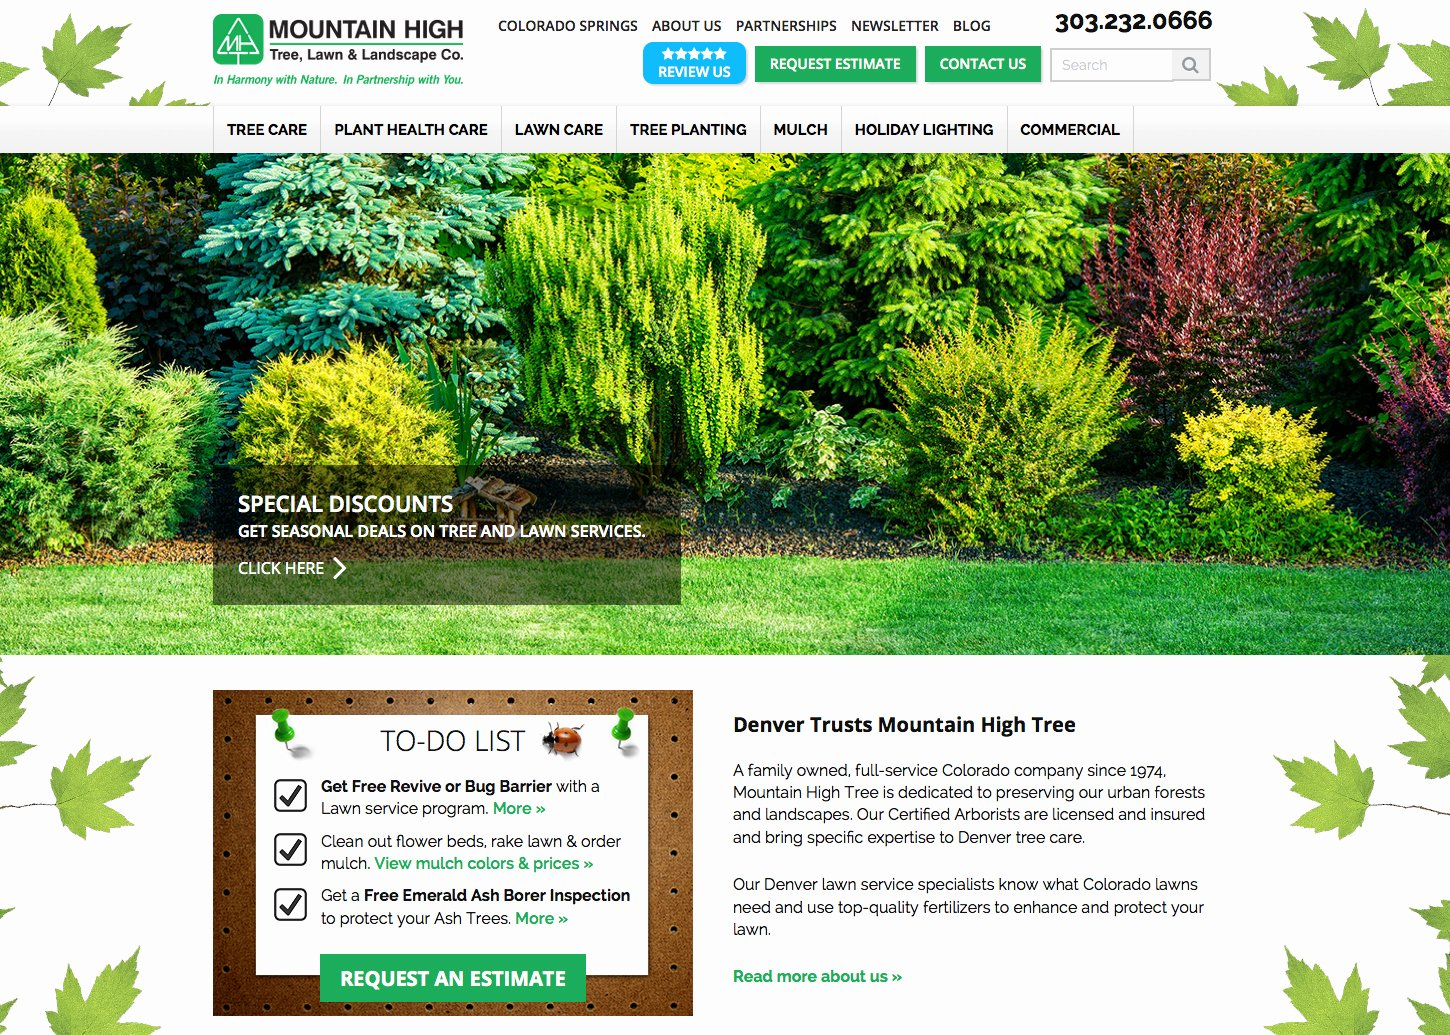 Tree Service Estimate Template Lovely Contract Template Cleaning Servicemercial Proposal and